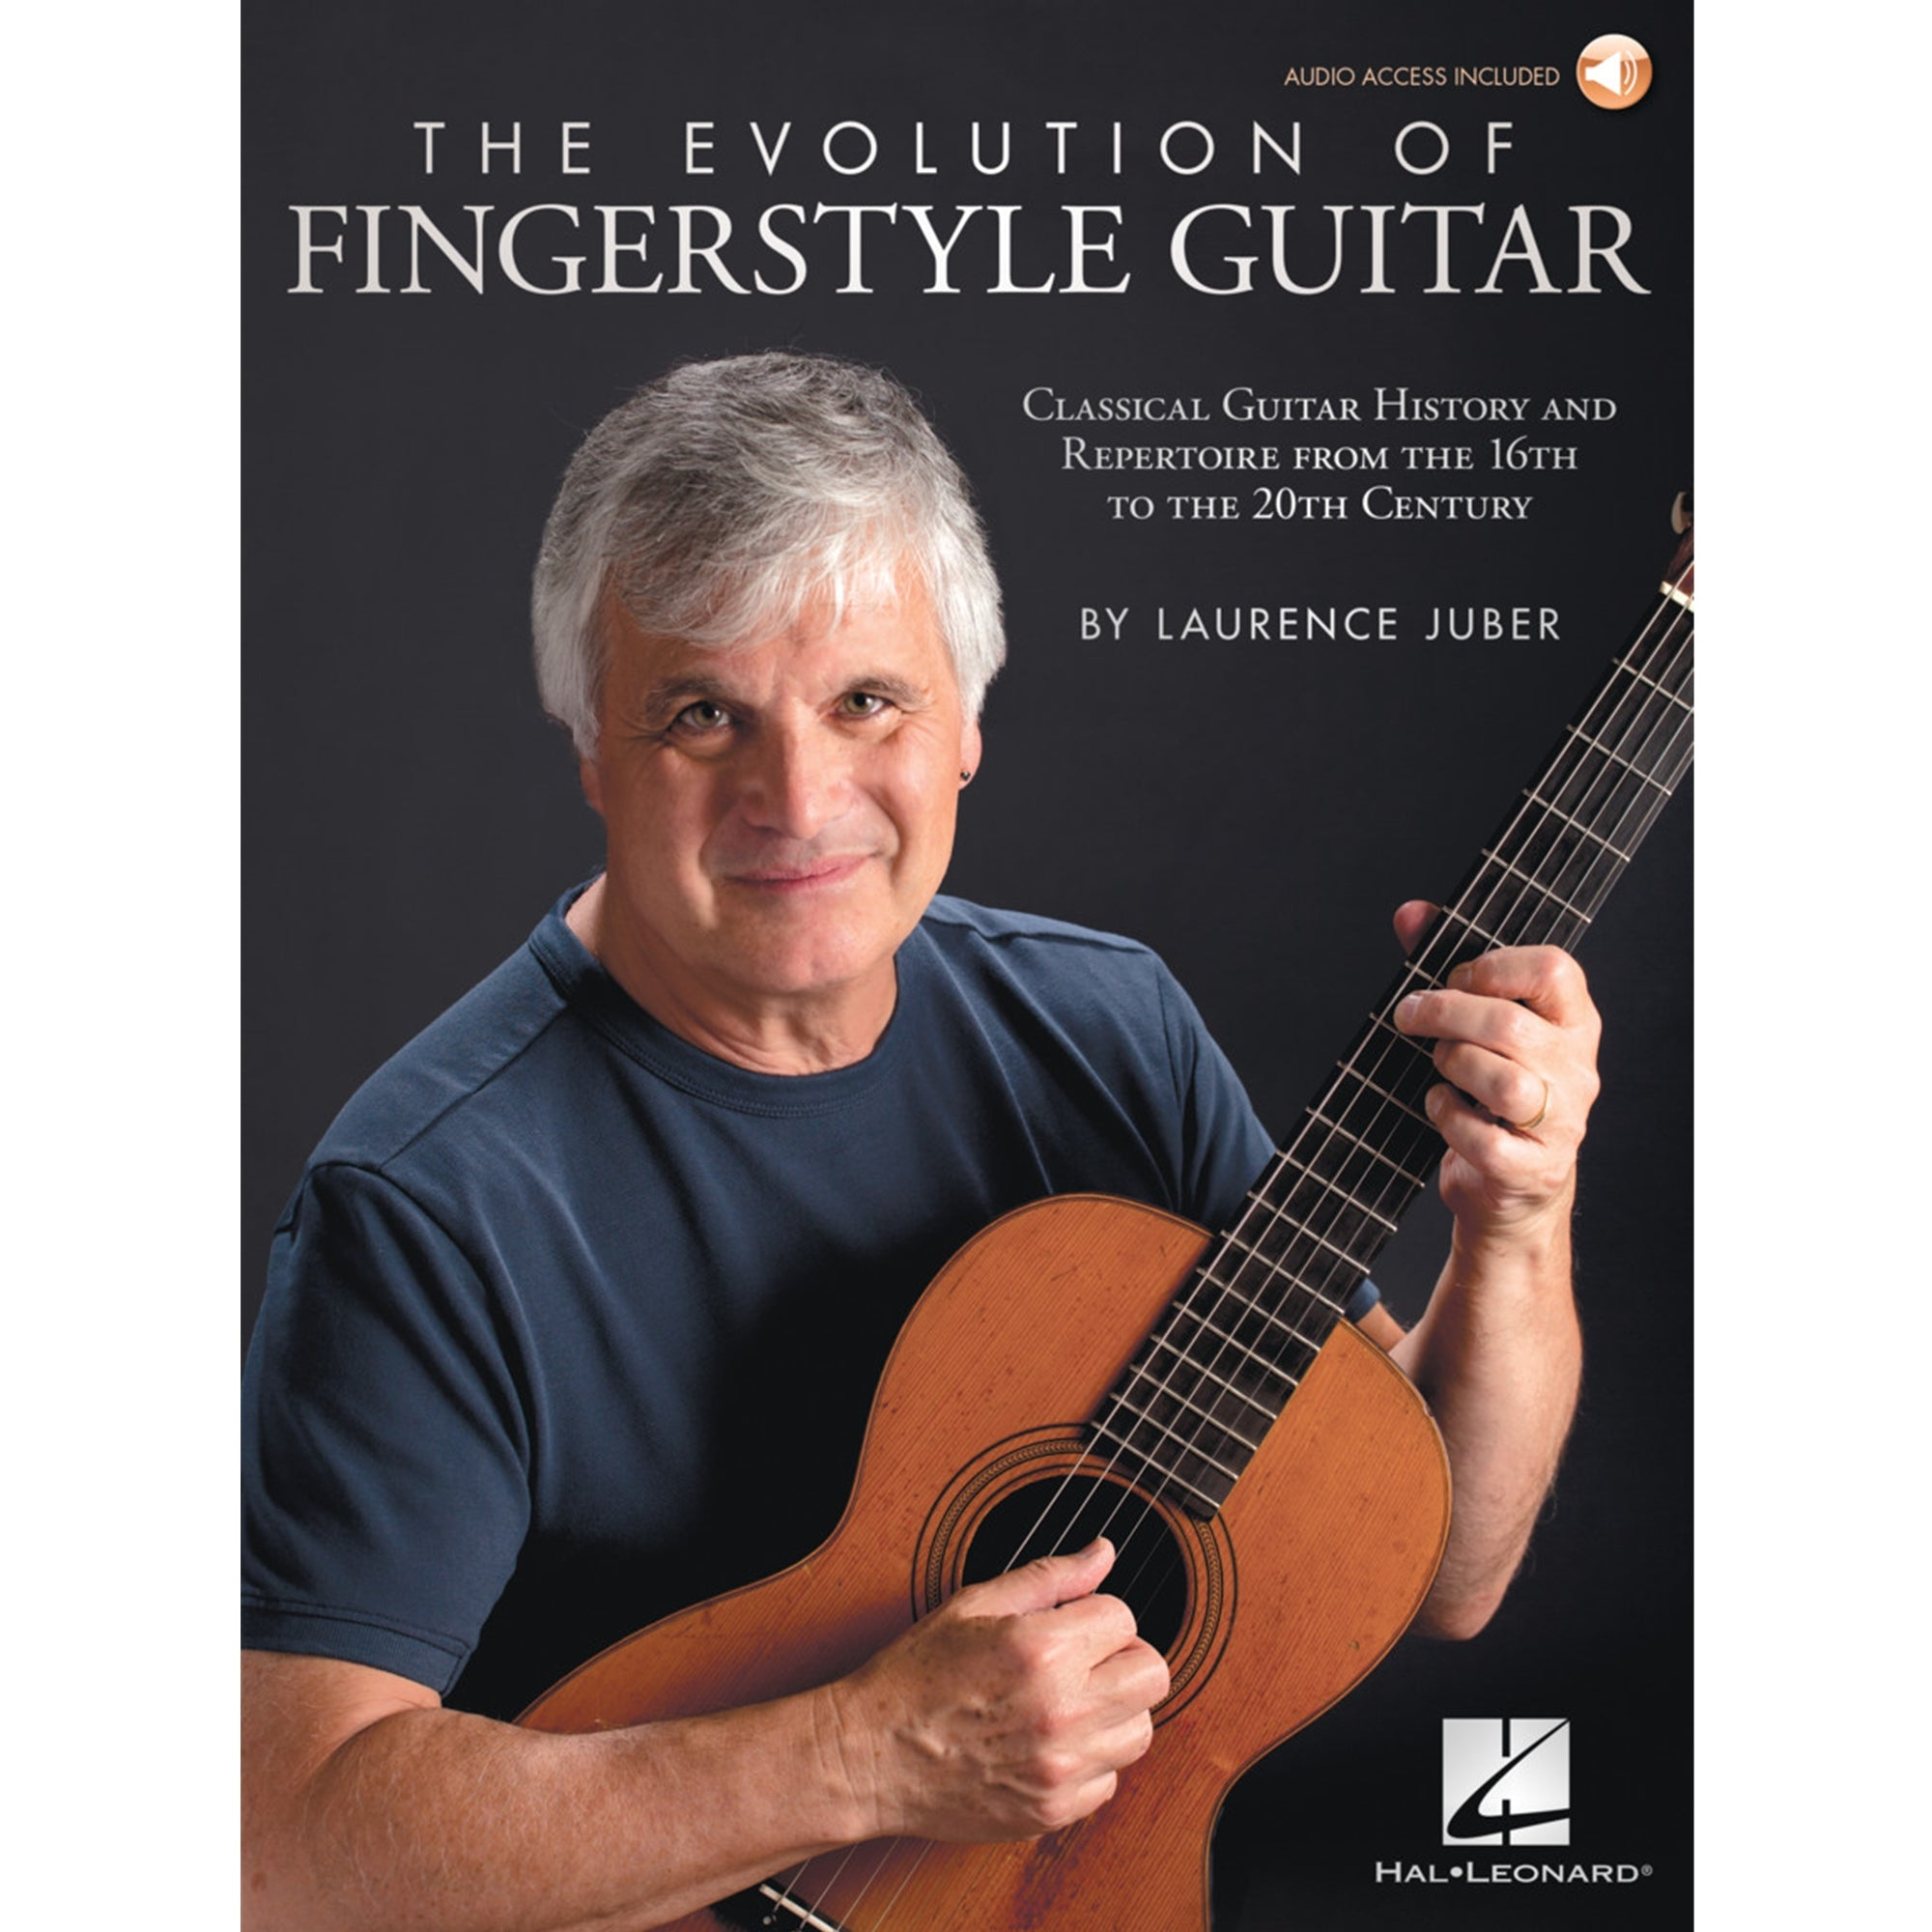 HAL LEONARD 283983 The Evolution of Fingerstyle Guitar